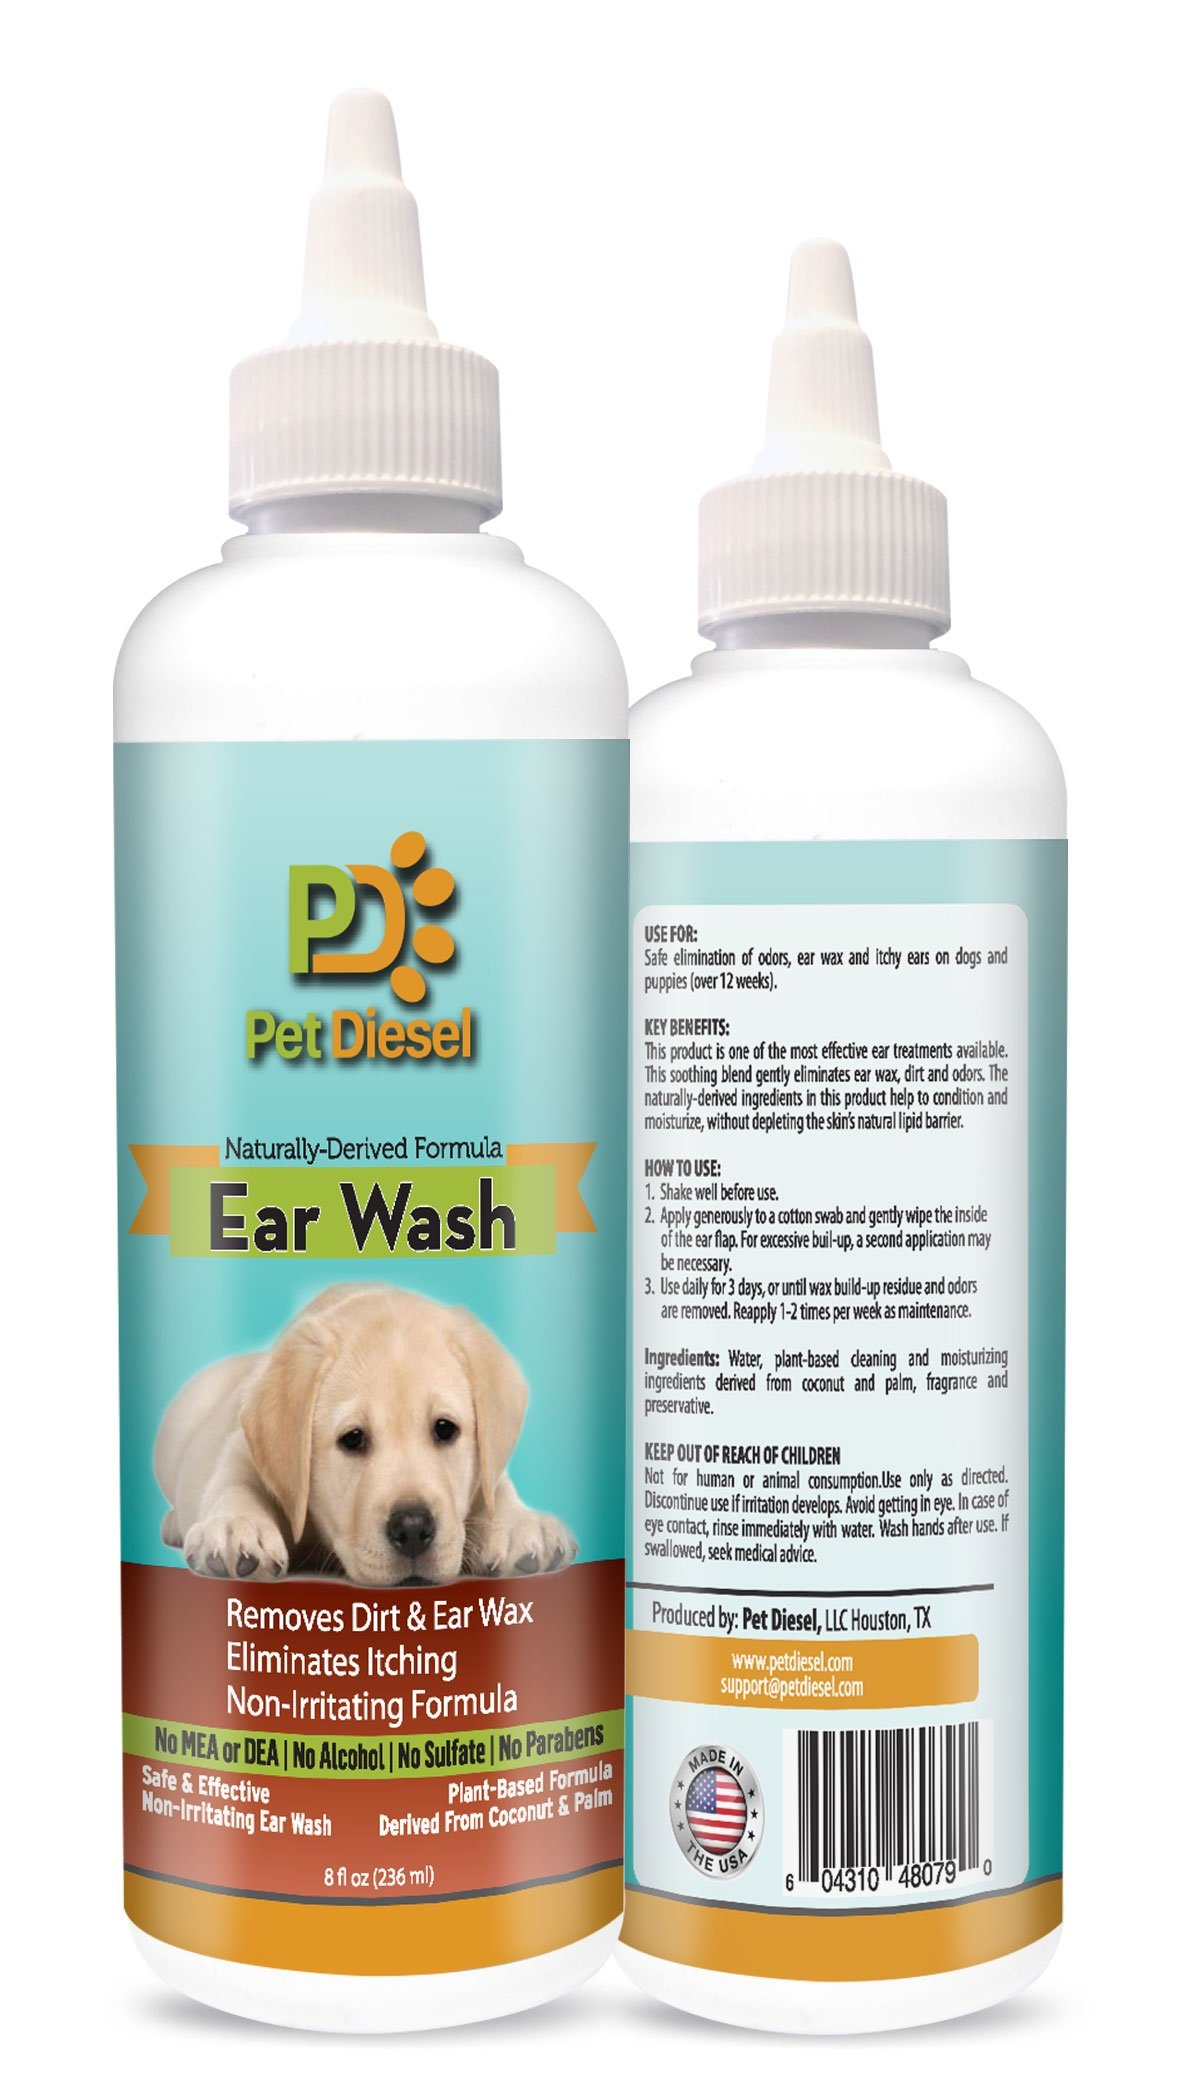 Dog Ear Cleanser Ideal For Ear Wax Removal, Itchy Ears, Yeast & Odor Elimination - Effective & Non Irritating Naturally Derived Formula With Coconut, Palm Oil & Citrus Extracts - 8 FL Oz